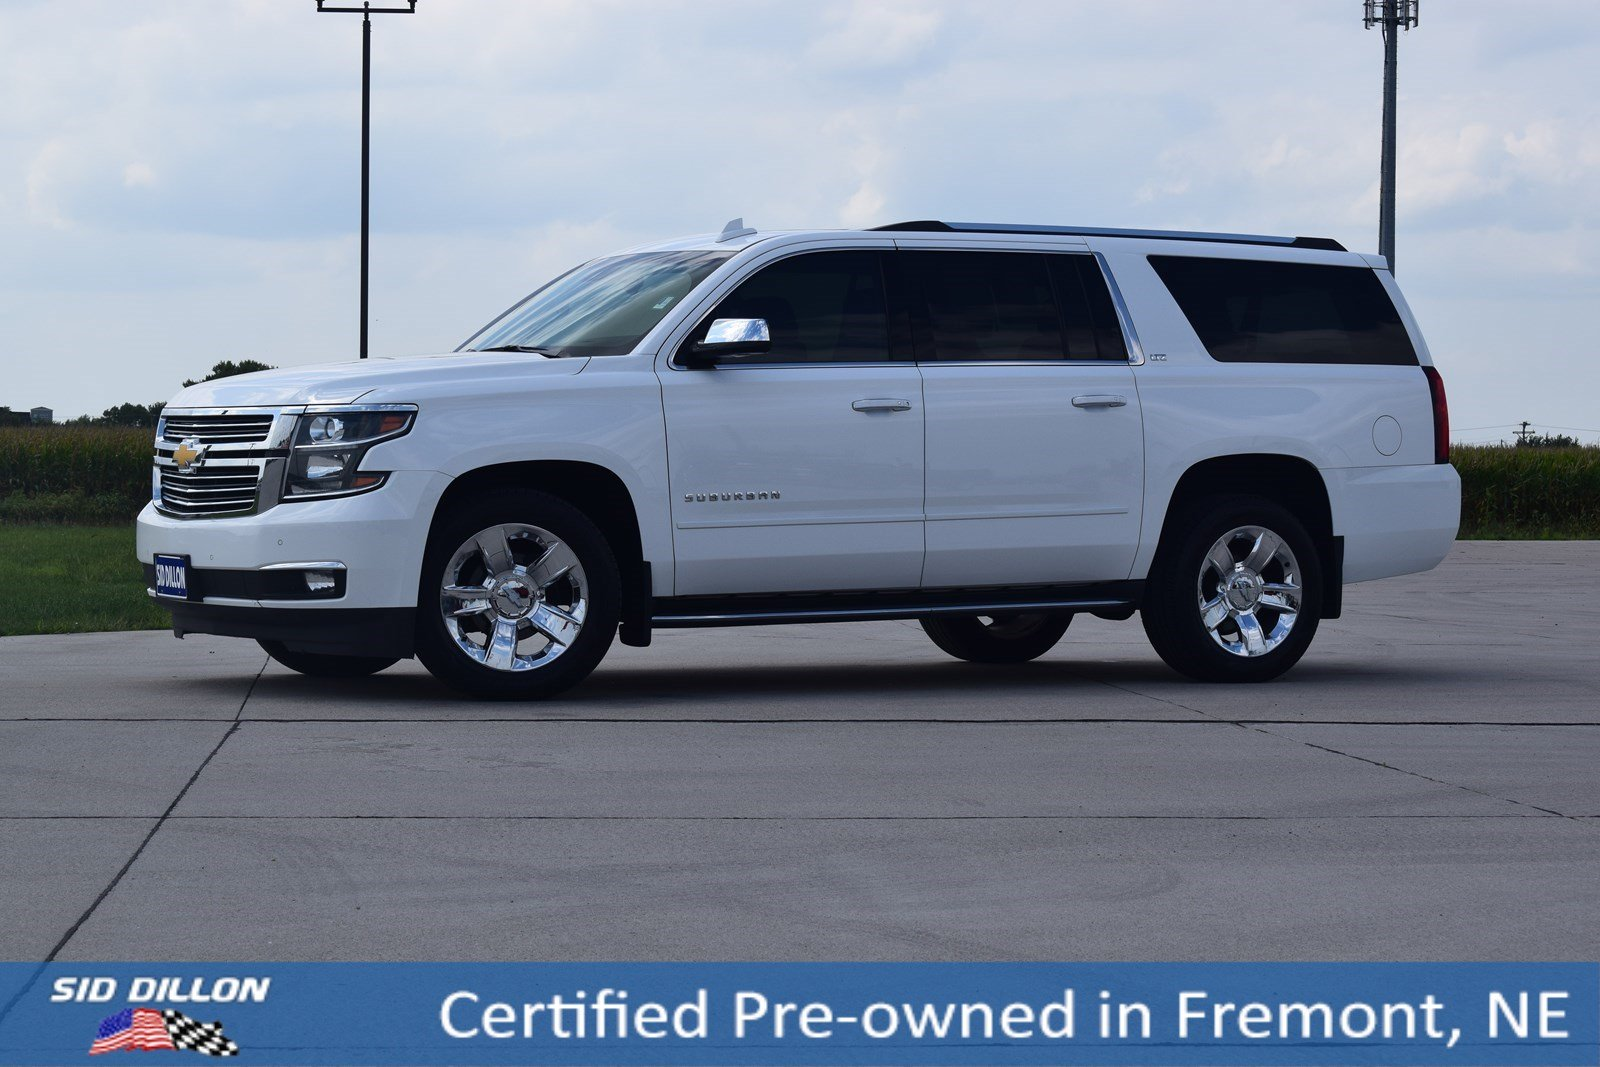 Certified Pre-Owned 2015 Chevrolet Suburban LTZ SUV in Fremont ... on 2015 nissan altima wiring diagram, 2015 subaru forester wiring diagram, 2015 nissan titan wiring diagram, 2015 mercedes-benz c-class wiring diagram, 2015 ford escape wiring diagram, 2015 toyota tundra wiring diagram, 2015 ford mustang wiring diagram, 2015 ford transit wiring diagram, 2015 ford f250 wiring diagram, 2015 ford fusion wiring diagram,